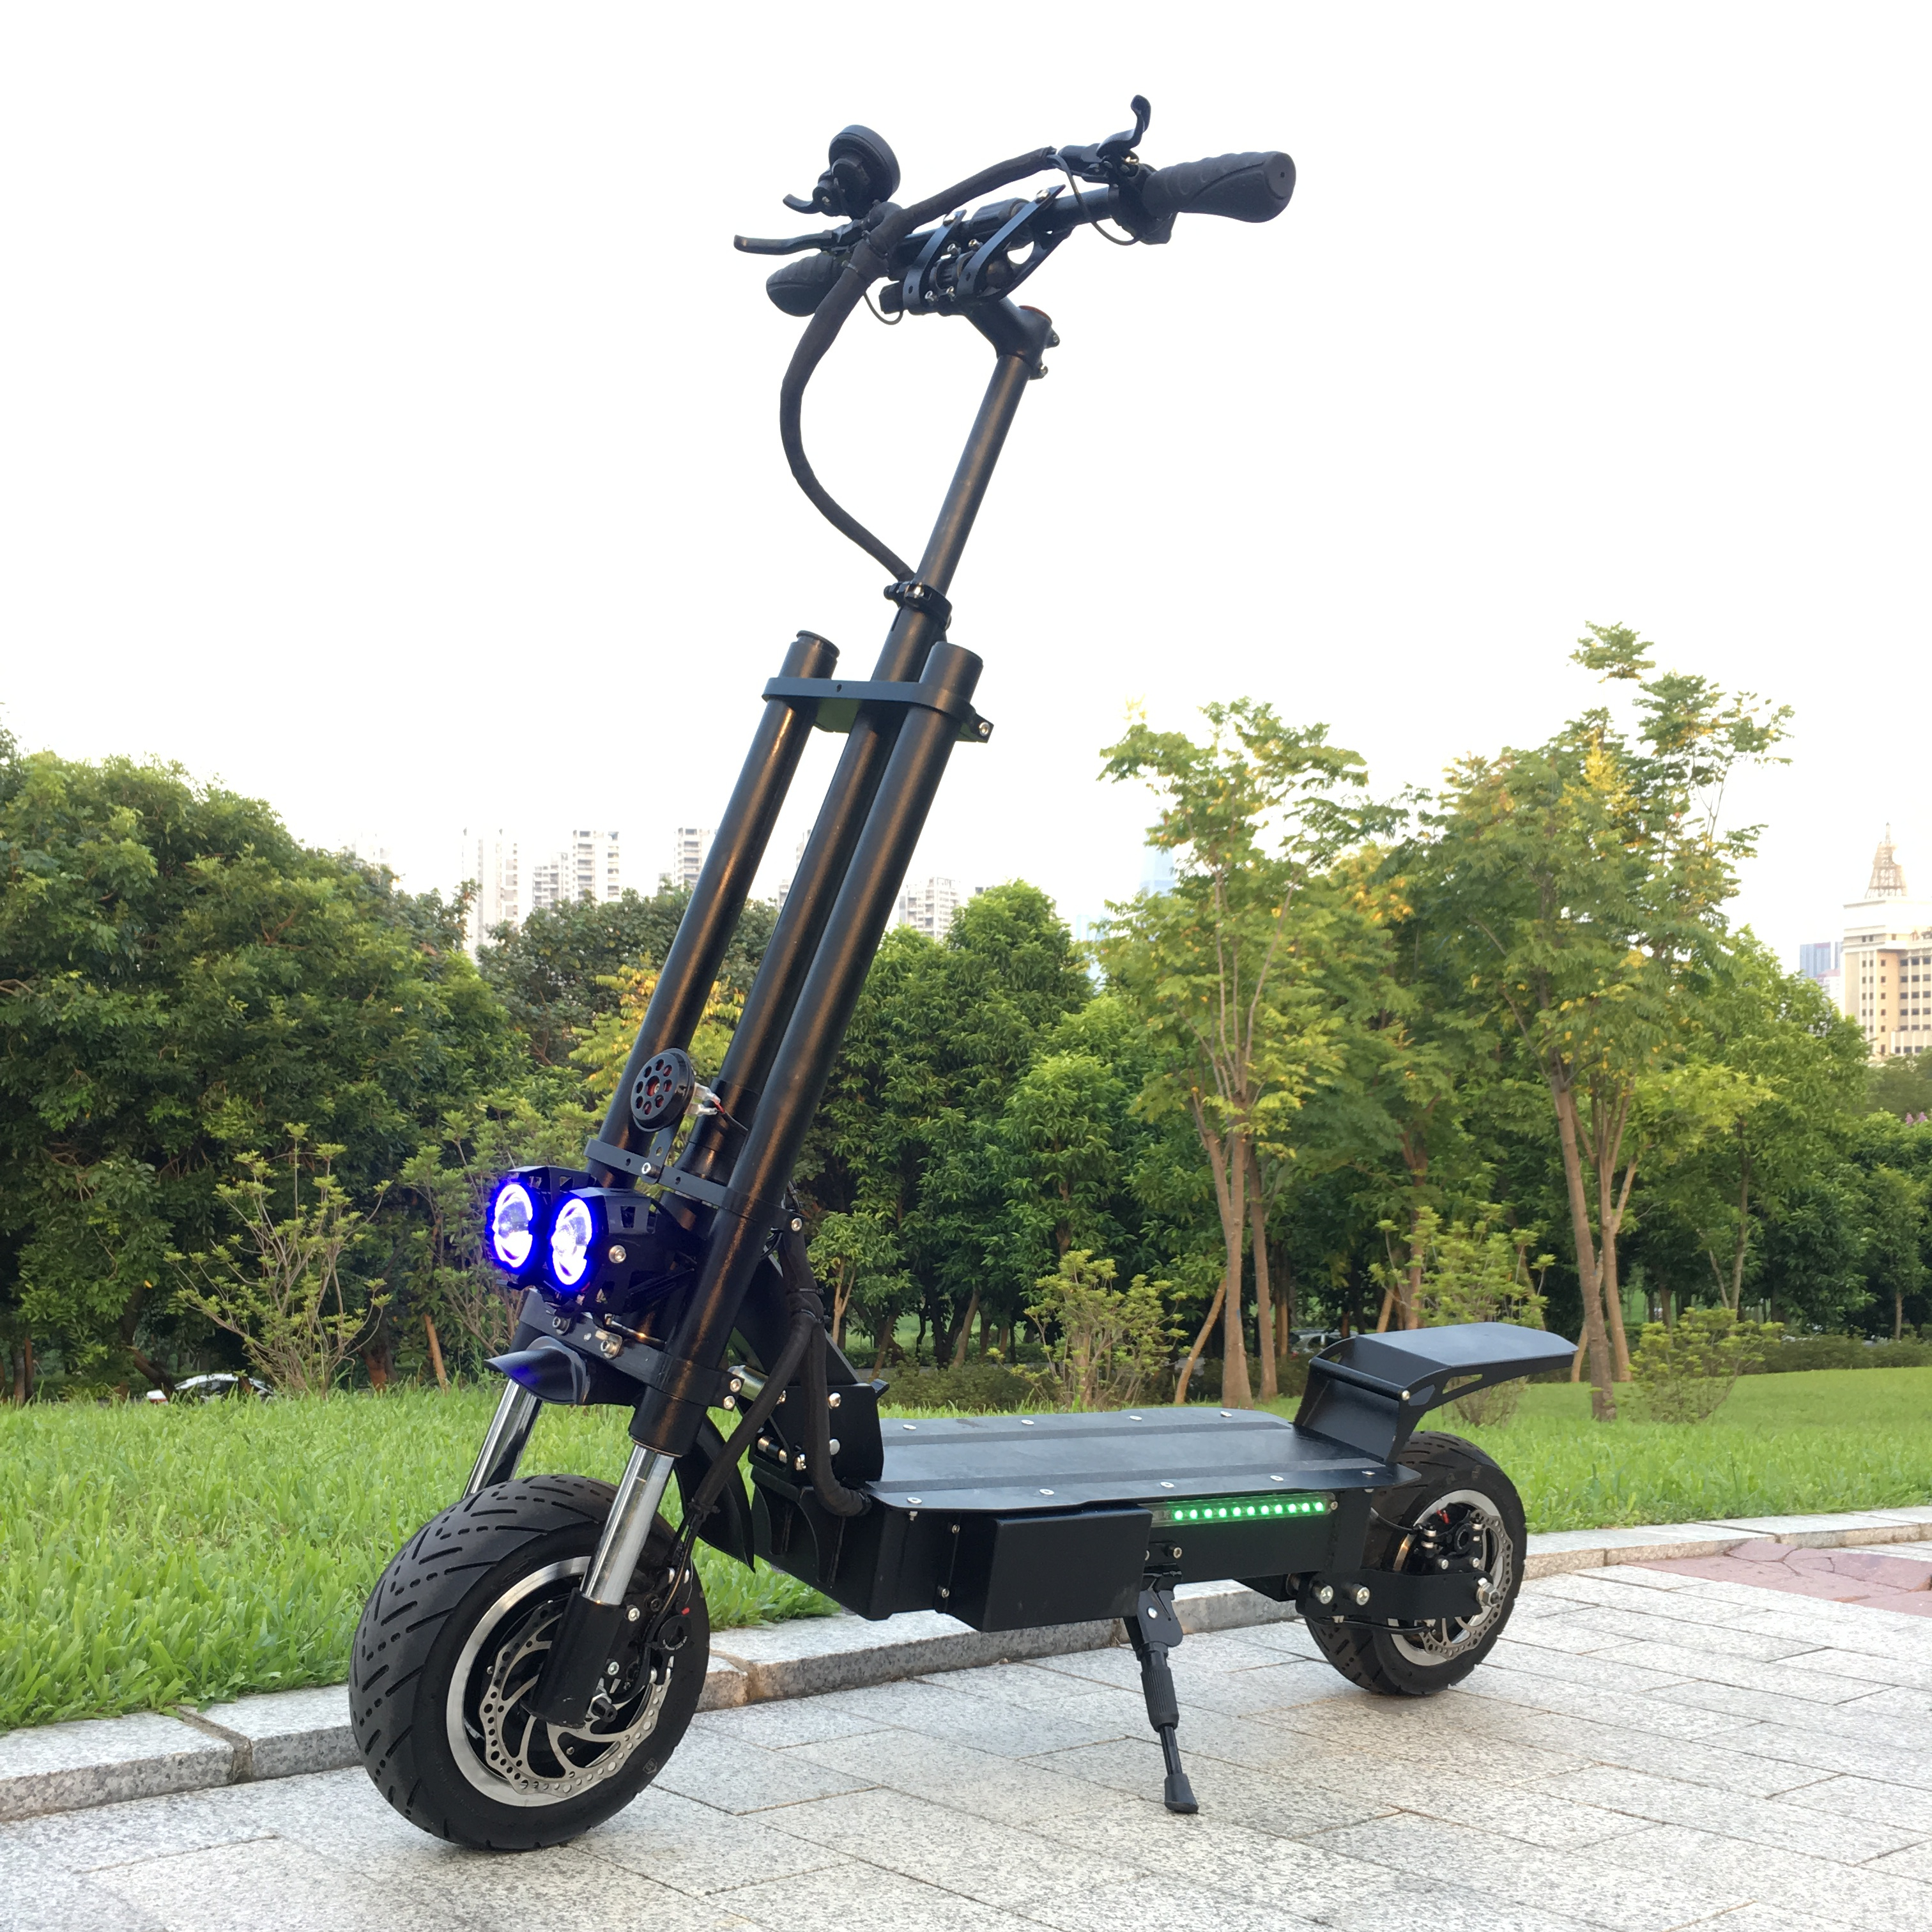 Amazon best hot seller 5600W great powerful 2 wheel electric scooter with seat electric double seat mobility scooter China, Black